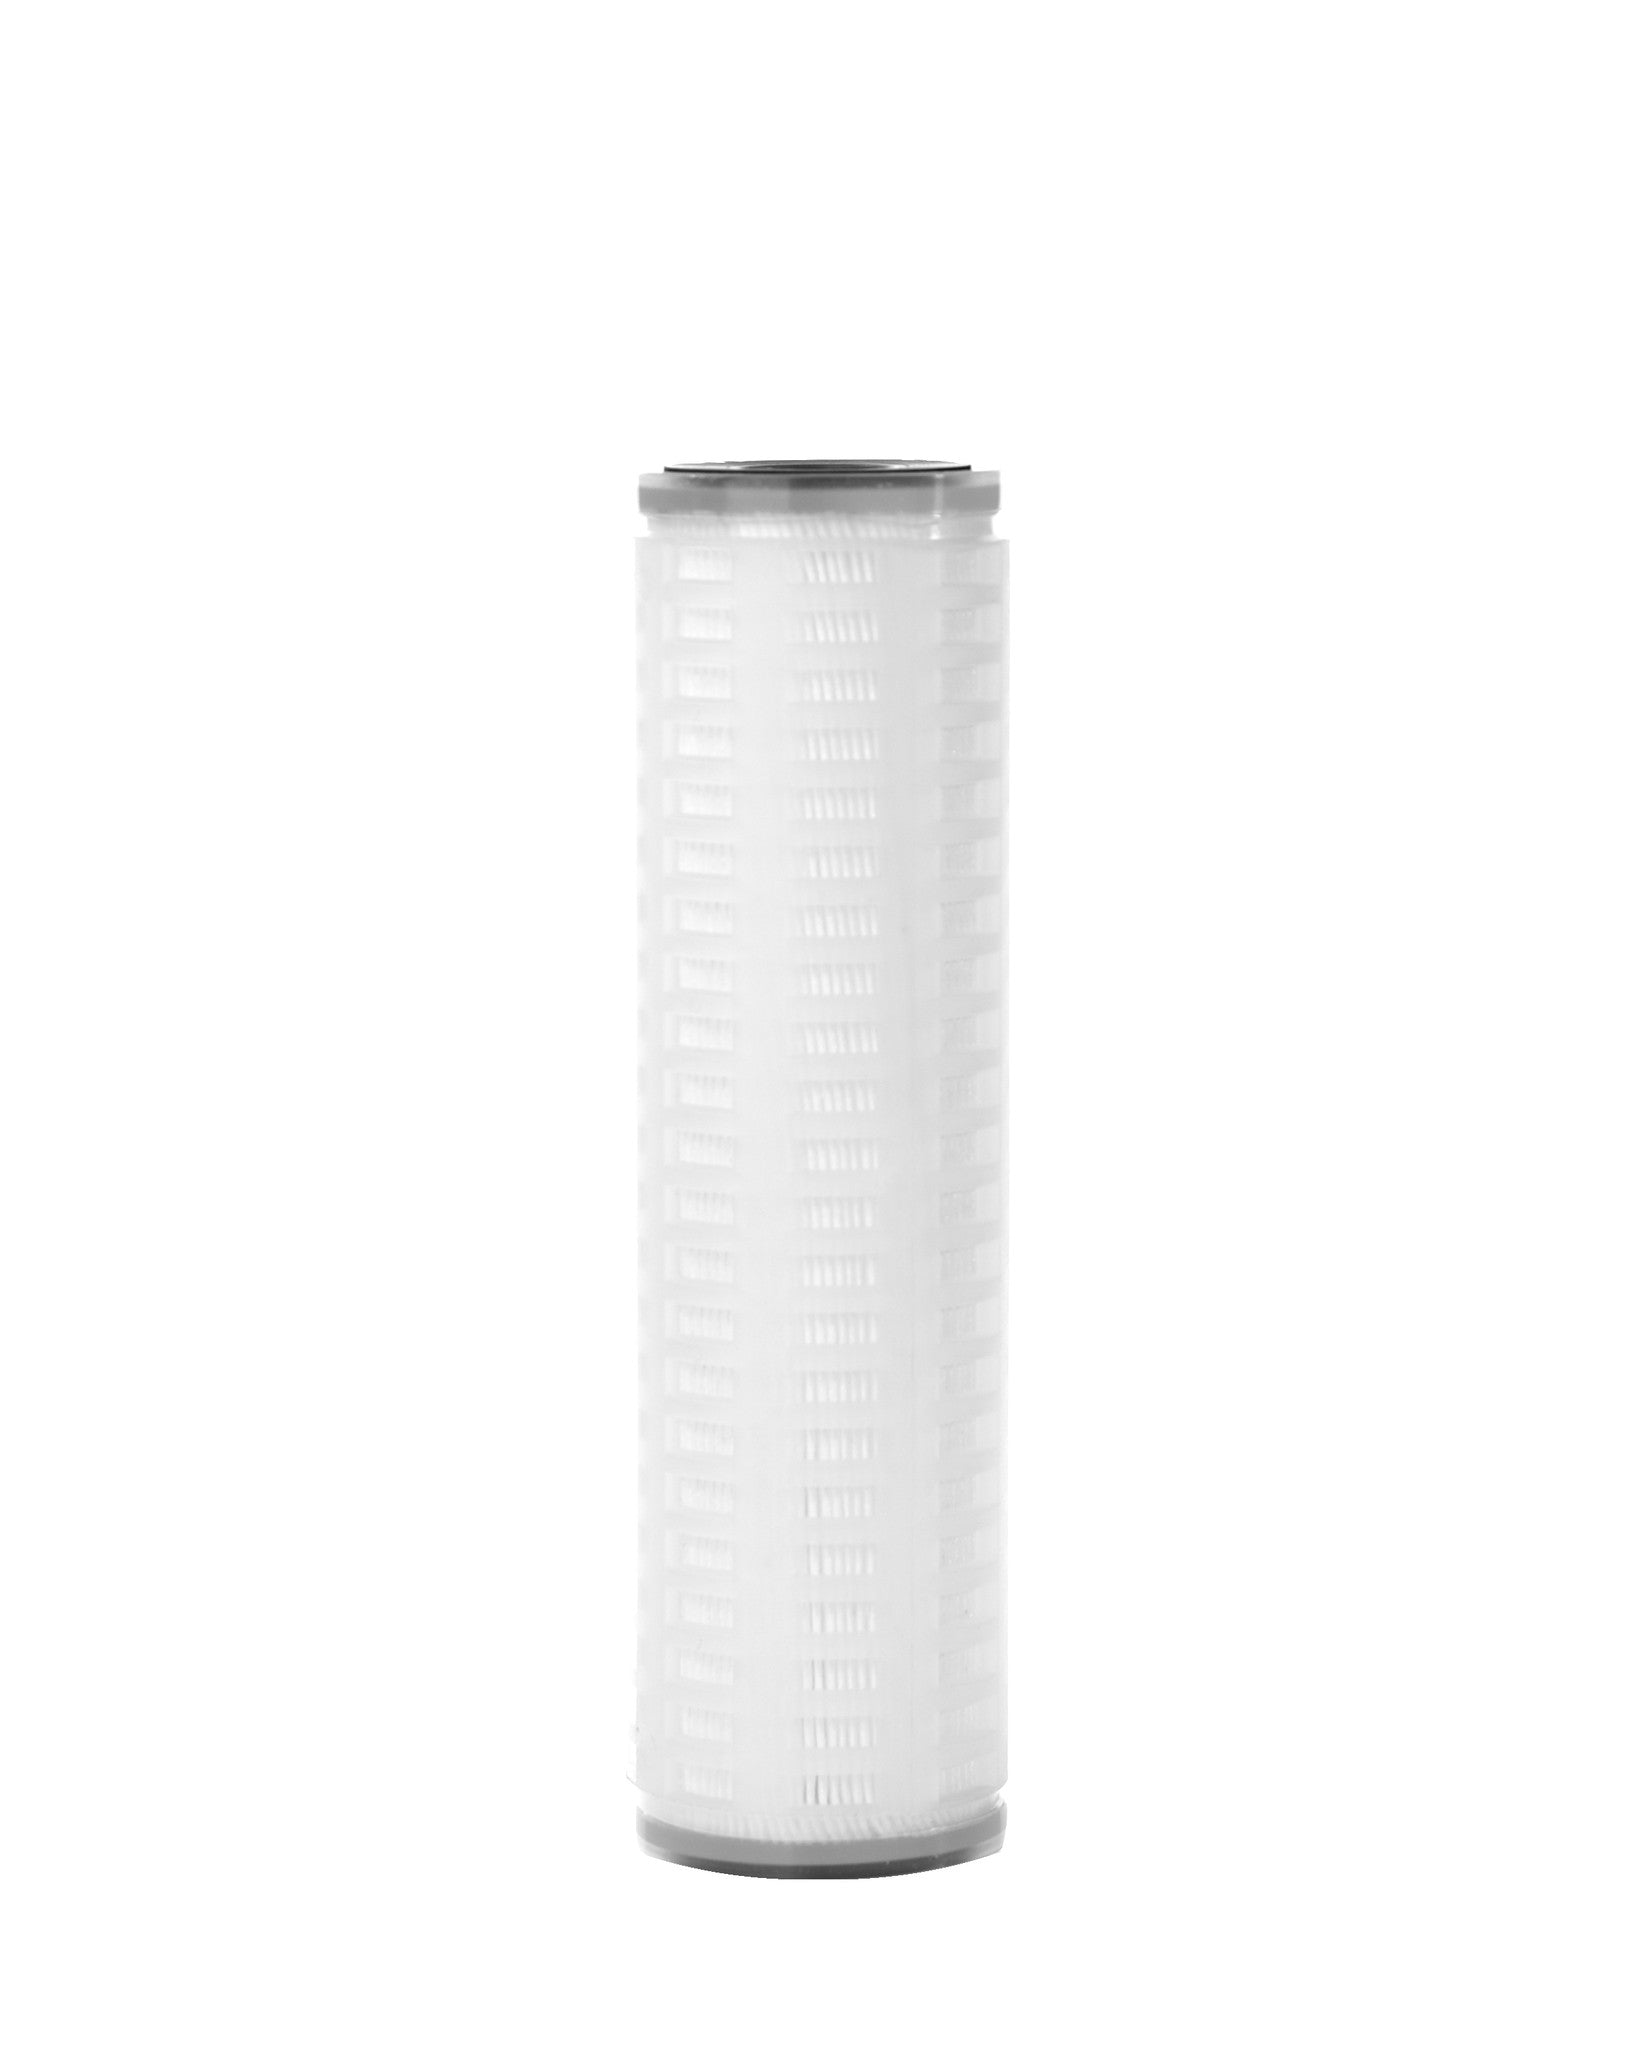 Graver QXL - Pleated Polypropylene Depth Filter Cartridge Depth Filter Cartridge - Filtersource.com